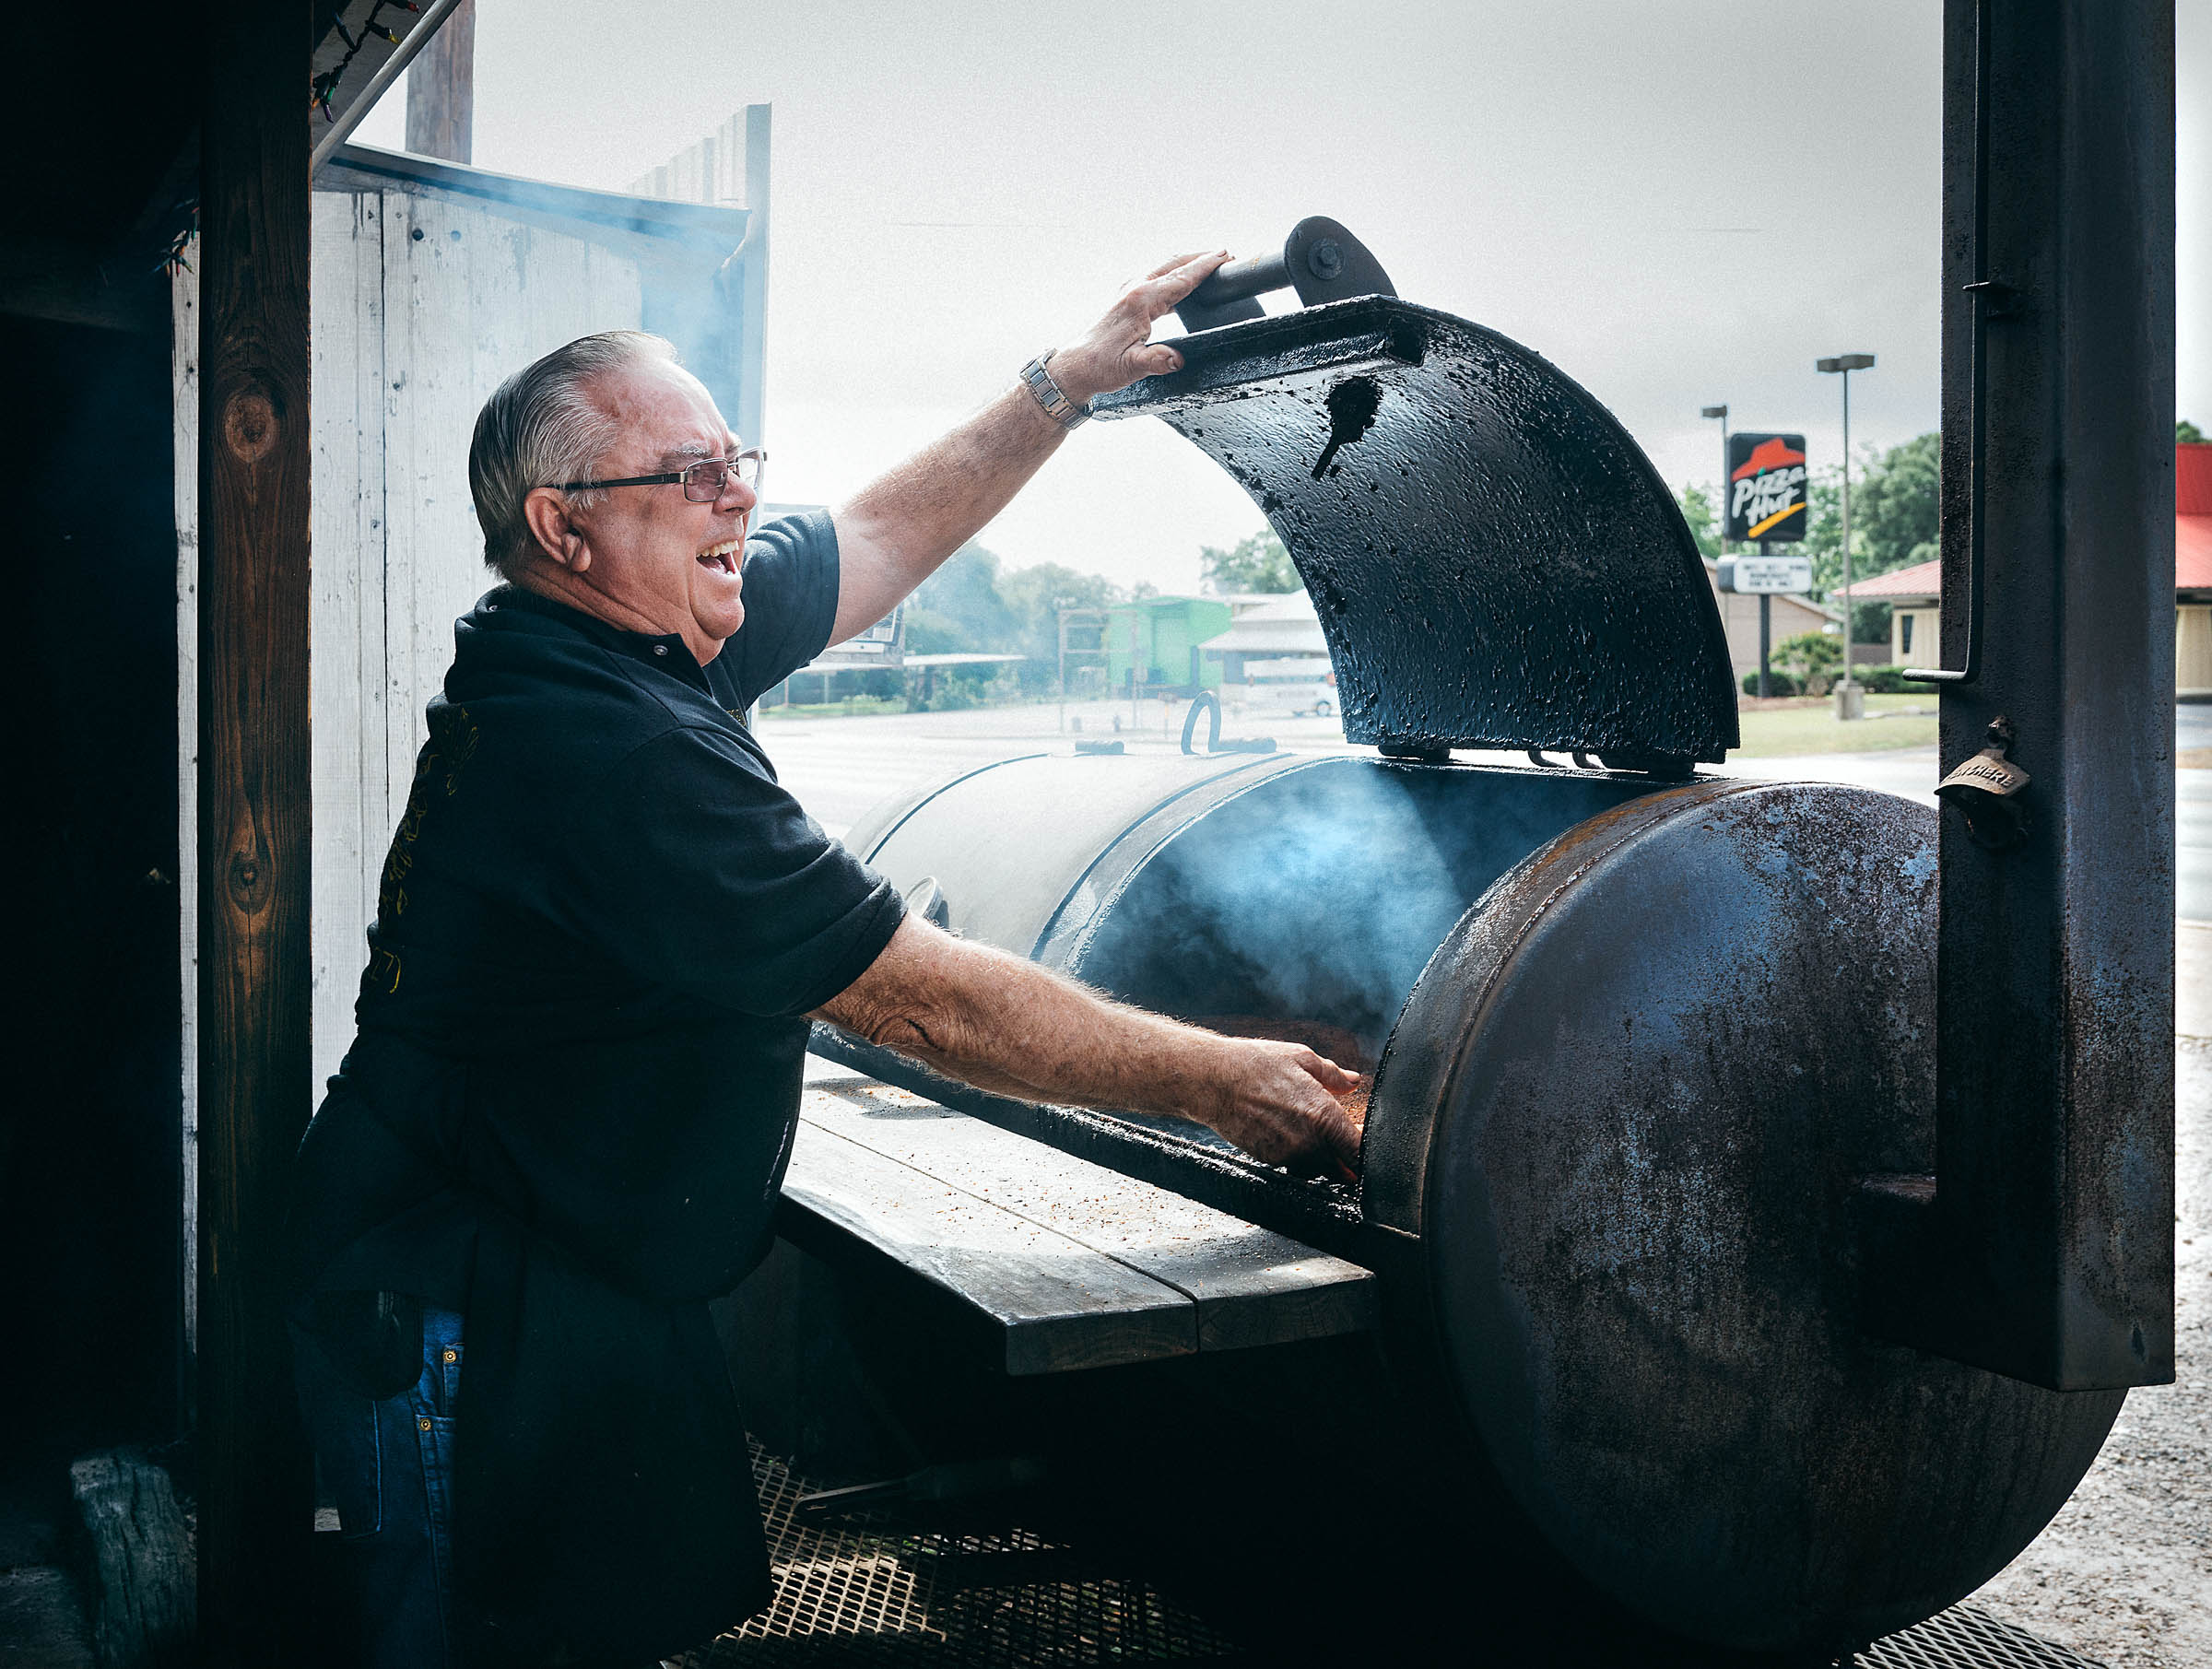 Pit-master Robert Payne of Paynes-BBQ in Burnet TX laughing as he opens his meat smoker.